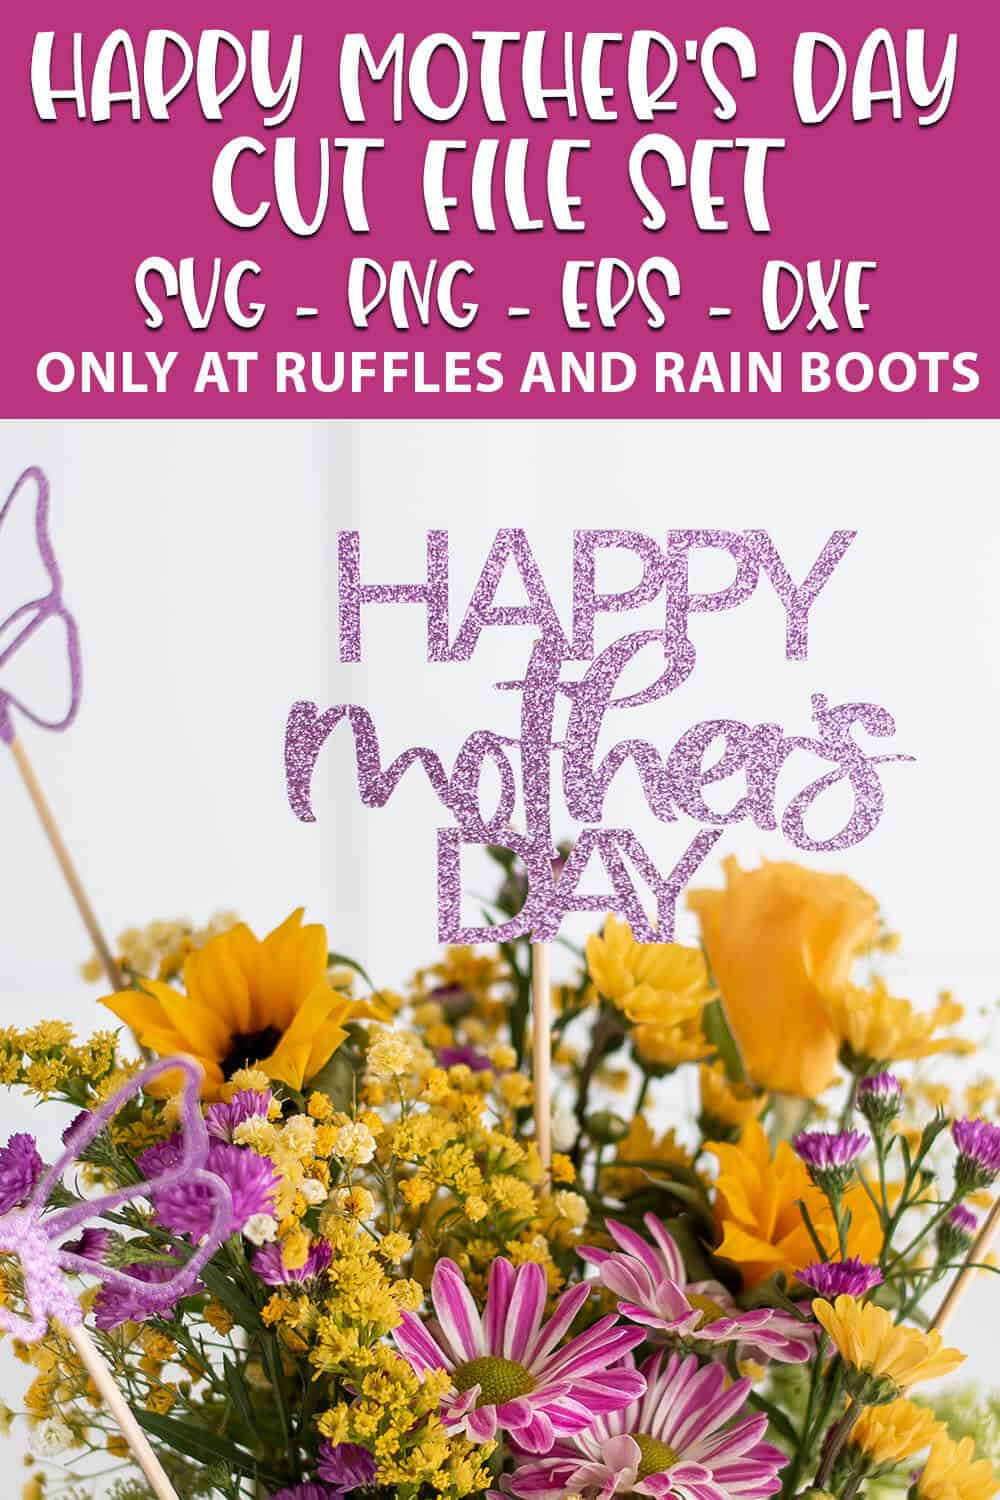 cut file set happy mother's day SVG for cricut or silhouette with text which reads happy mother's day cut file set svg png eps dxf